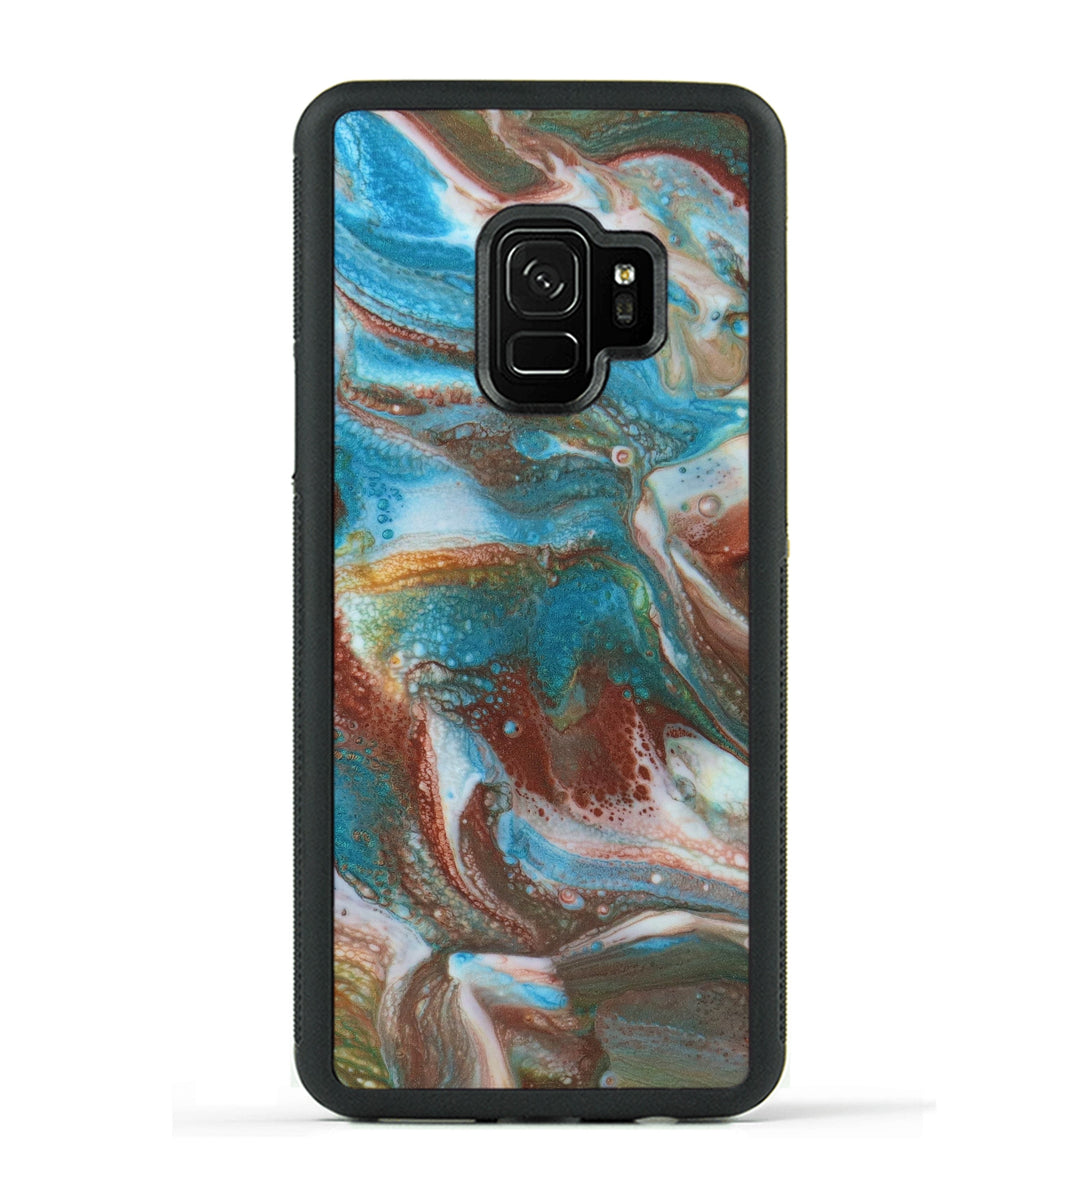 Galaxy S9 ResinArt Phone Case - Beatrix (Teal & Gold, 347754)